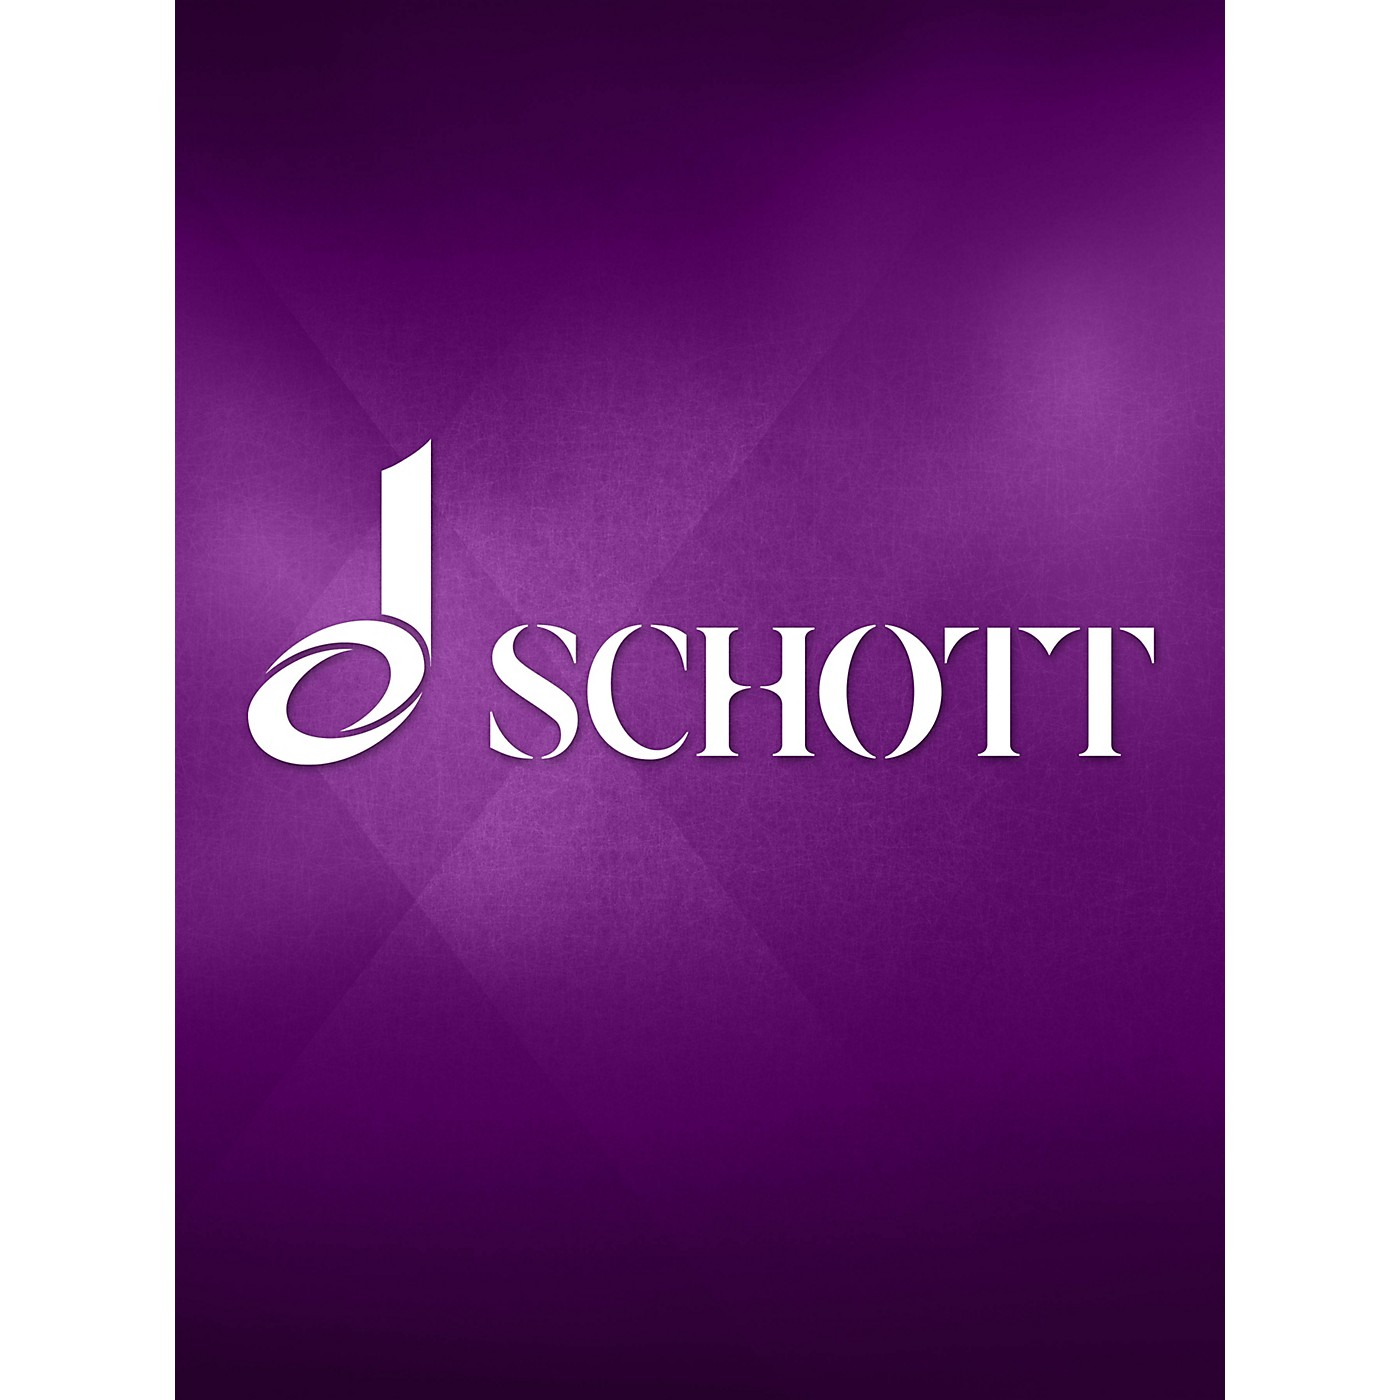 Schott Veni Creator (Chorus Score) SATB Composed by Carl Orff thumbnail